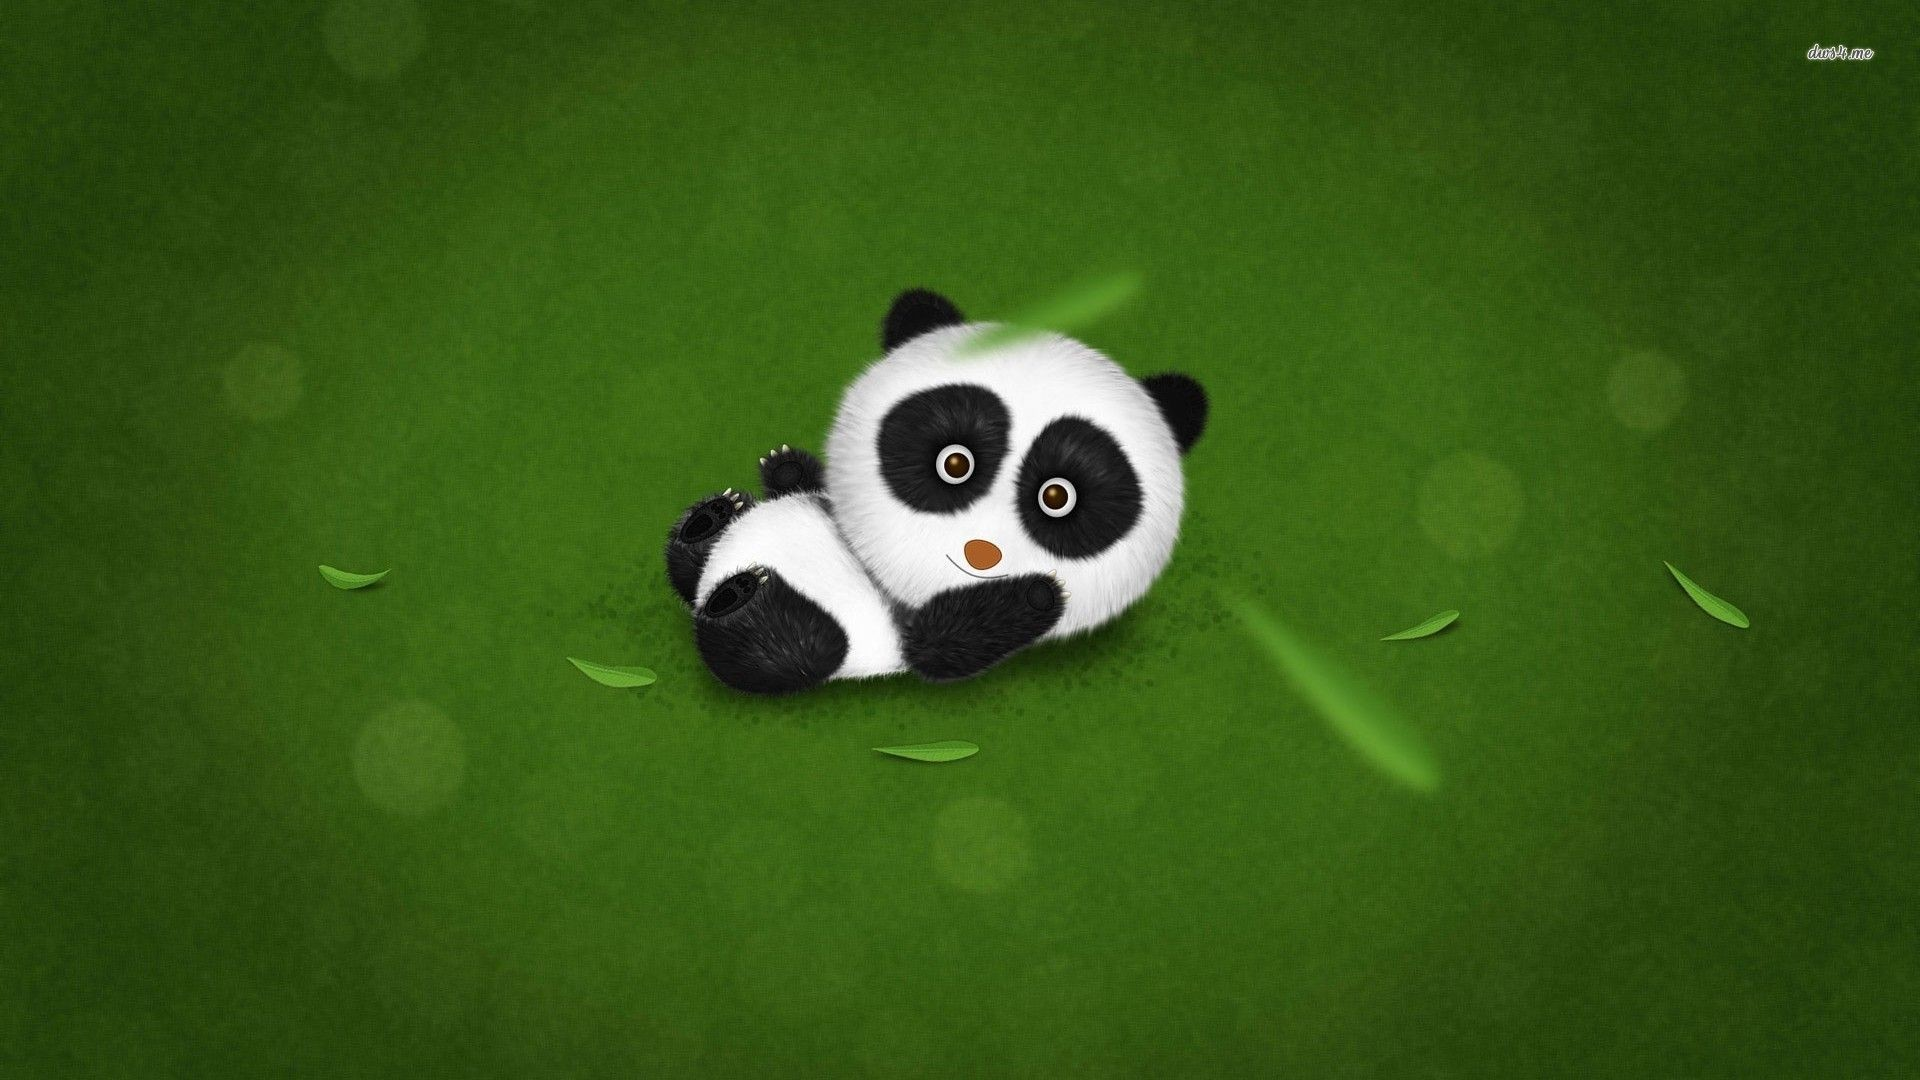 1920x1080 panda dumpling lite screenshot android apps cute animals i like pinterest